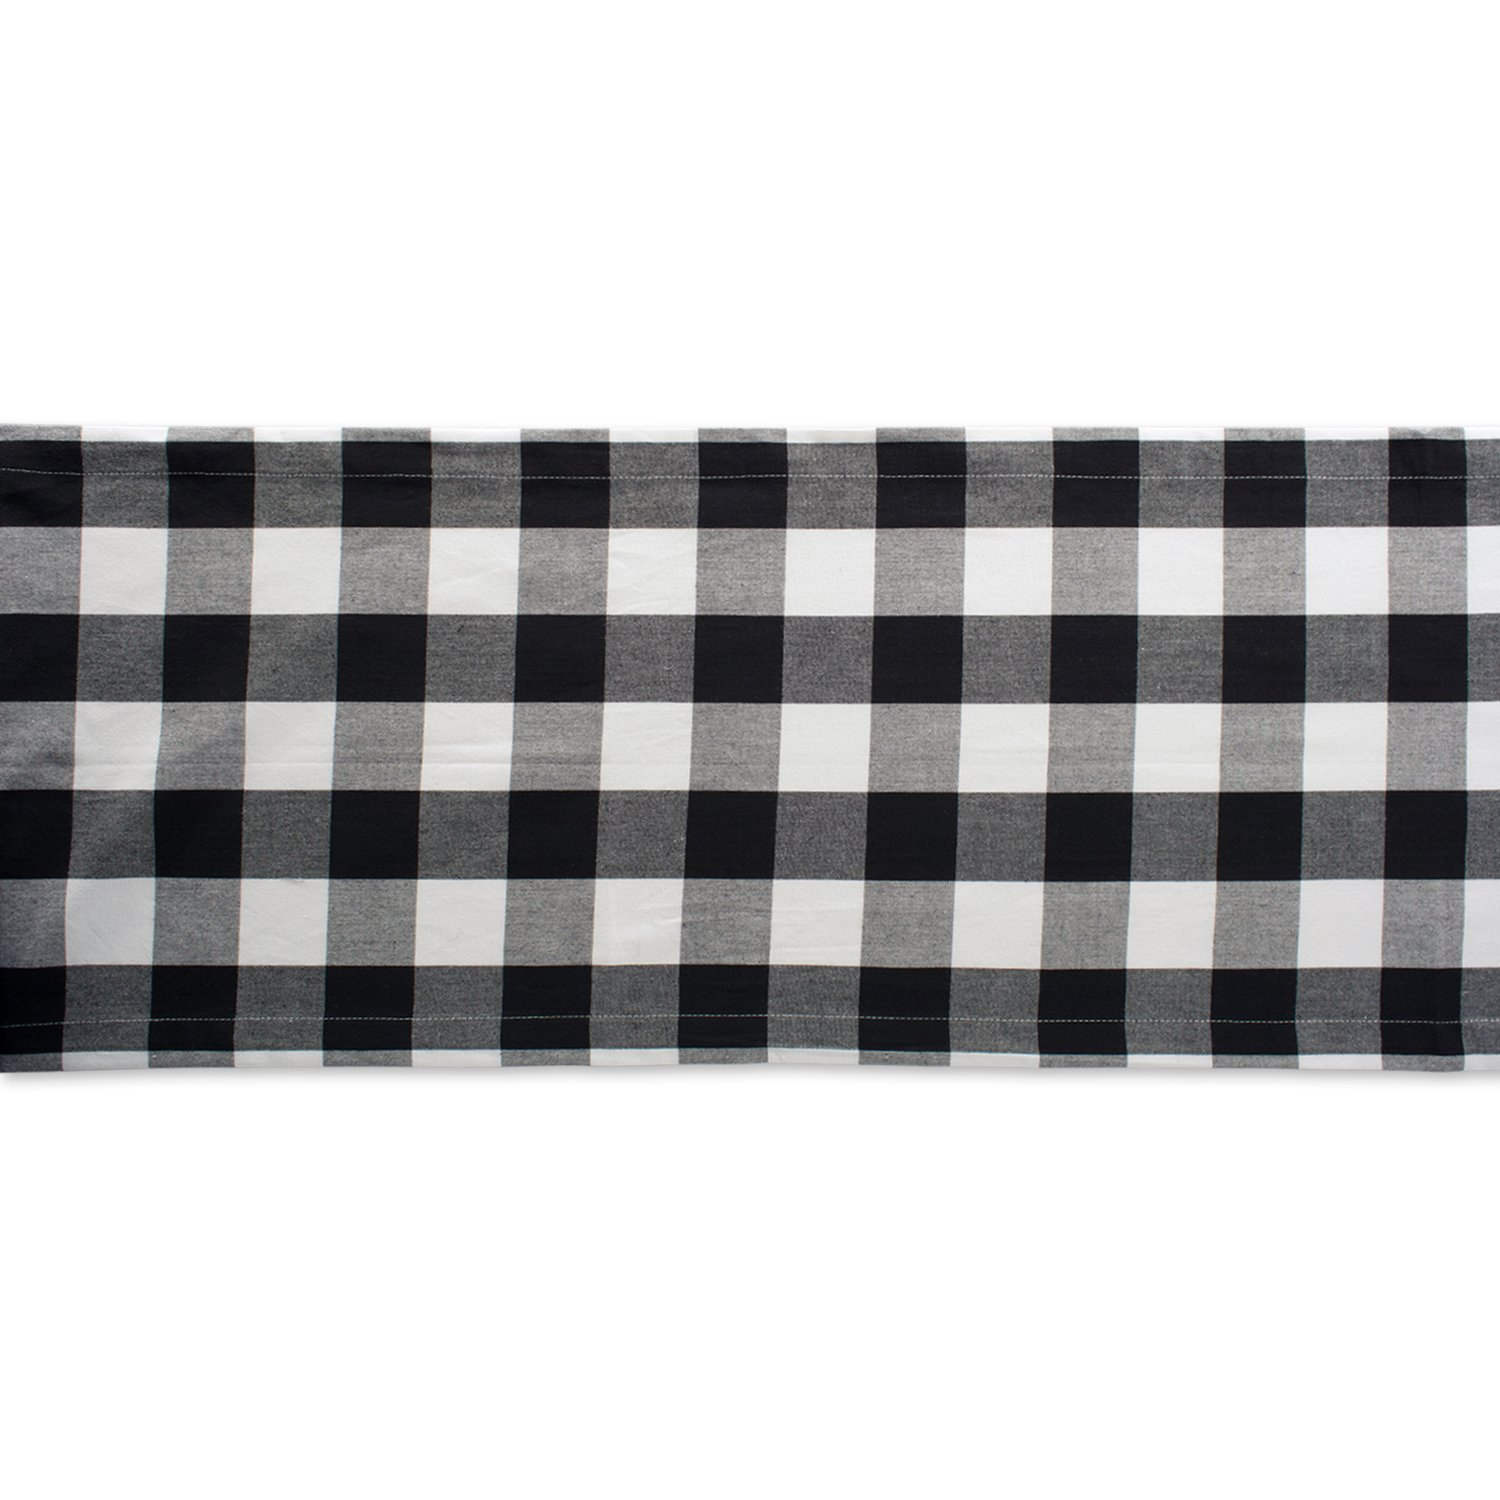 DII Cotton Buffalo Check Table Runner for Family Dinners or Gatherings, Indoor or Outdoor Parties, & Everyday Use (14x108'',  Seats 8-10 People), Black & White by DII (Image #3)